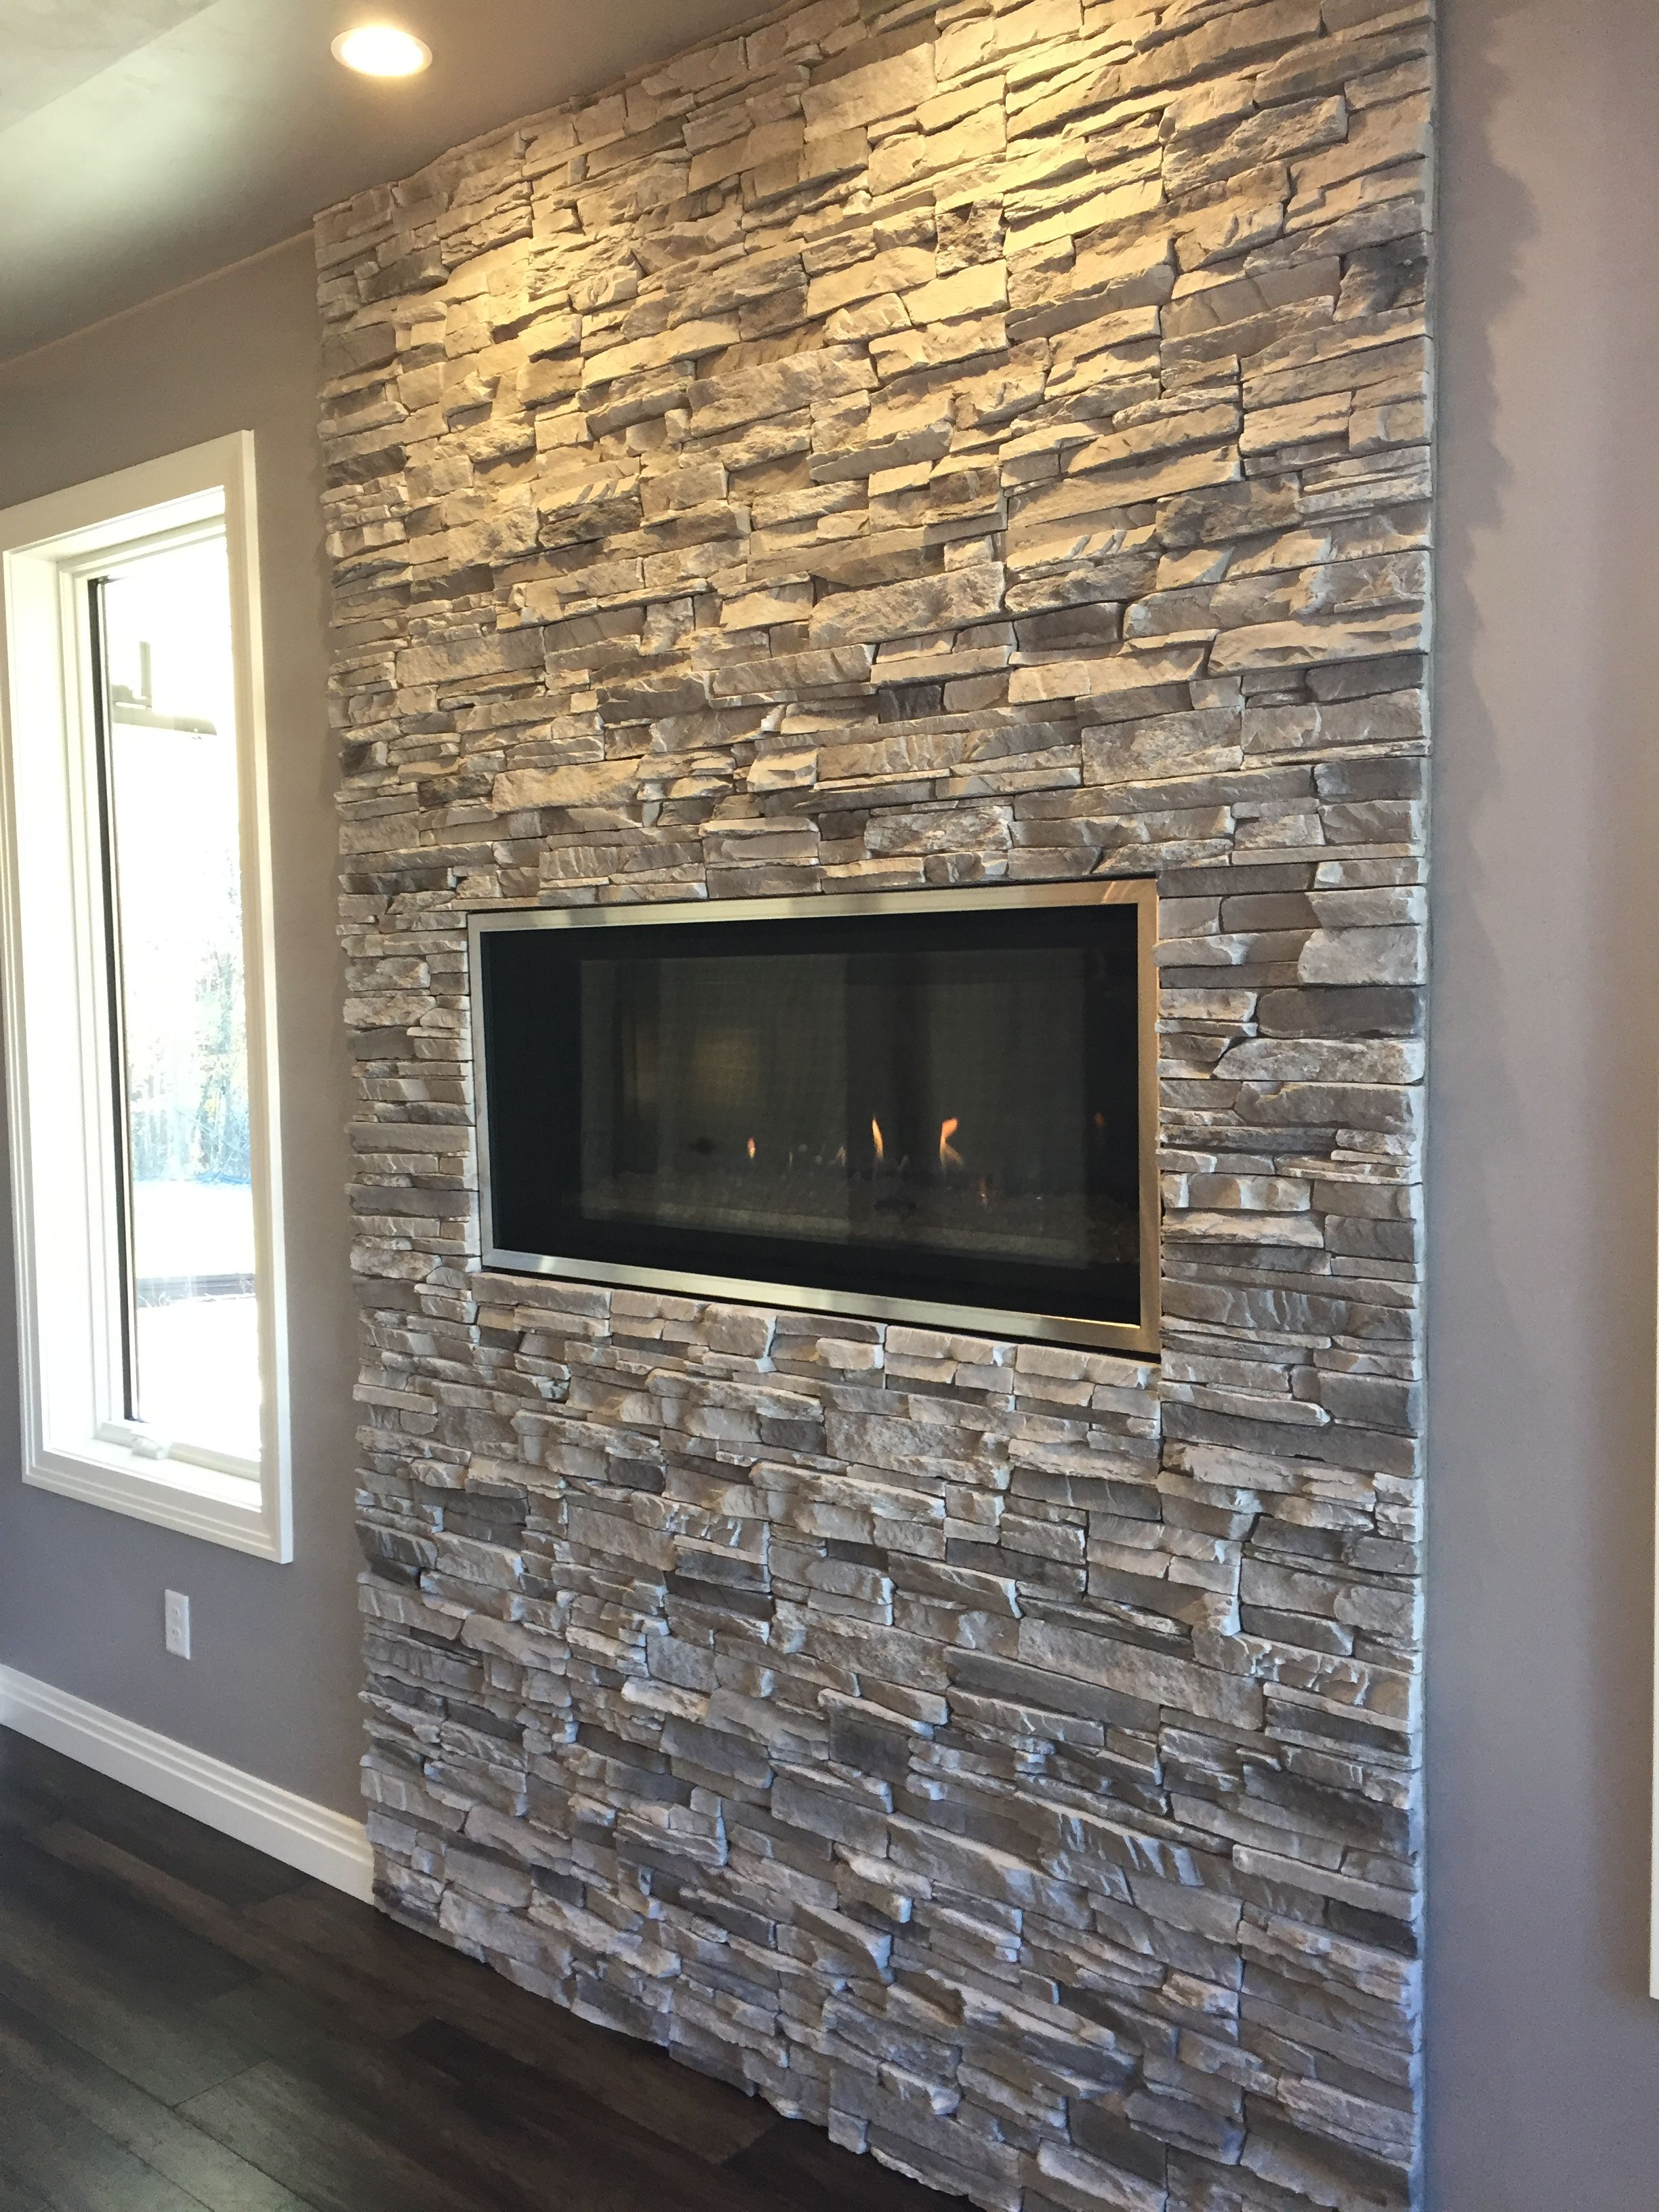 design exterior absorbing fireplace panels remarkable also pole stacked veneer fleurdelissf for decorations tile architecture stone zq stock alongwith bathroom wall shapely texture in photo